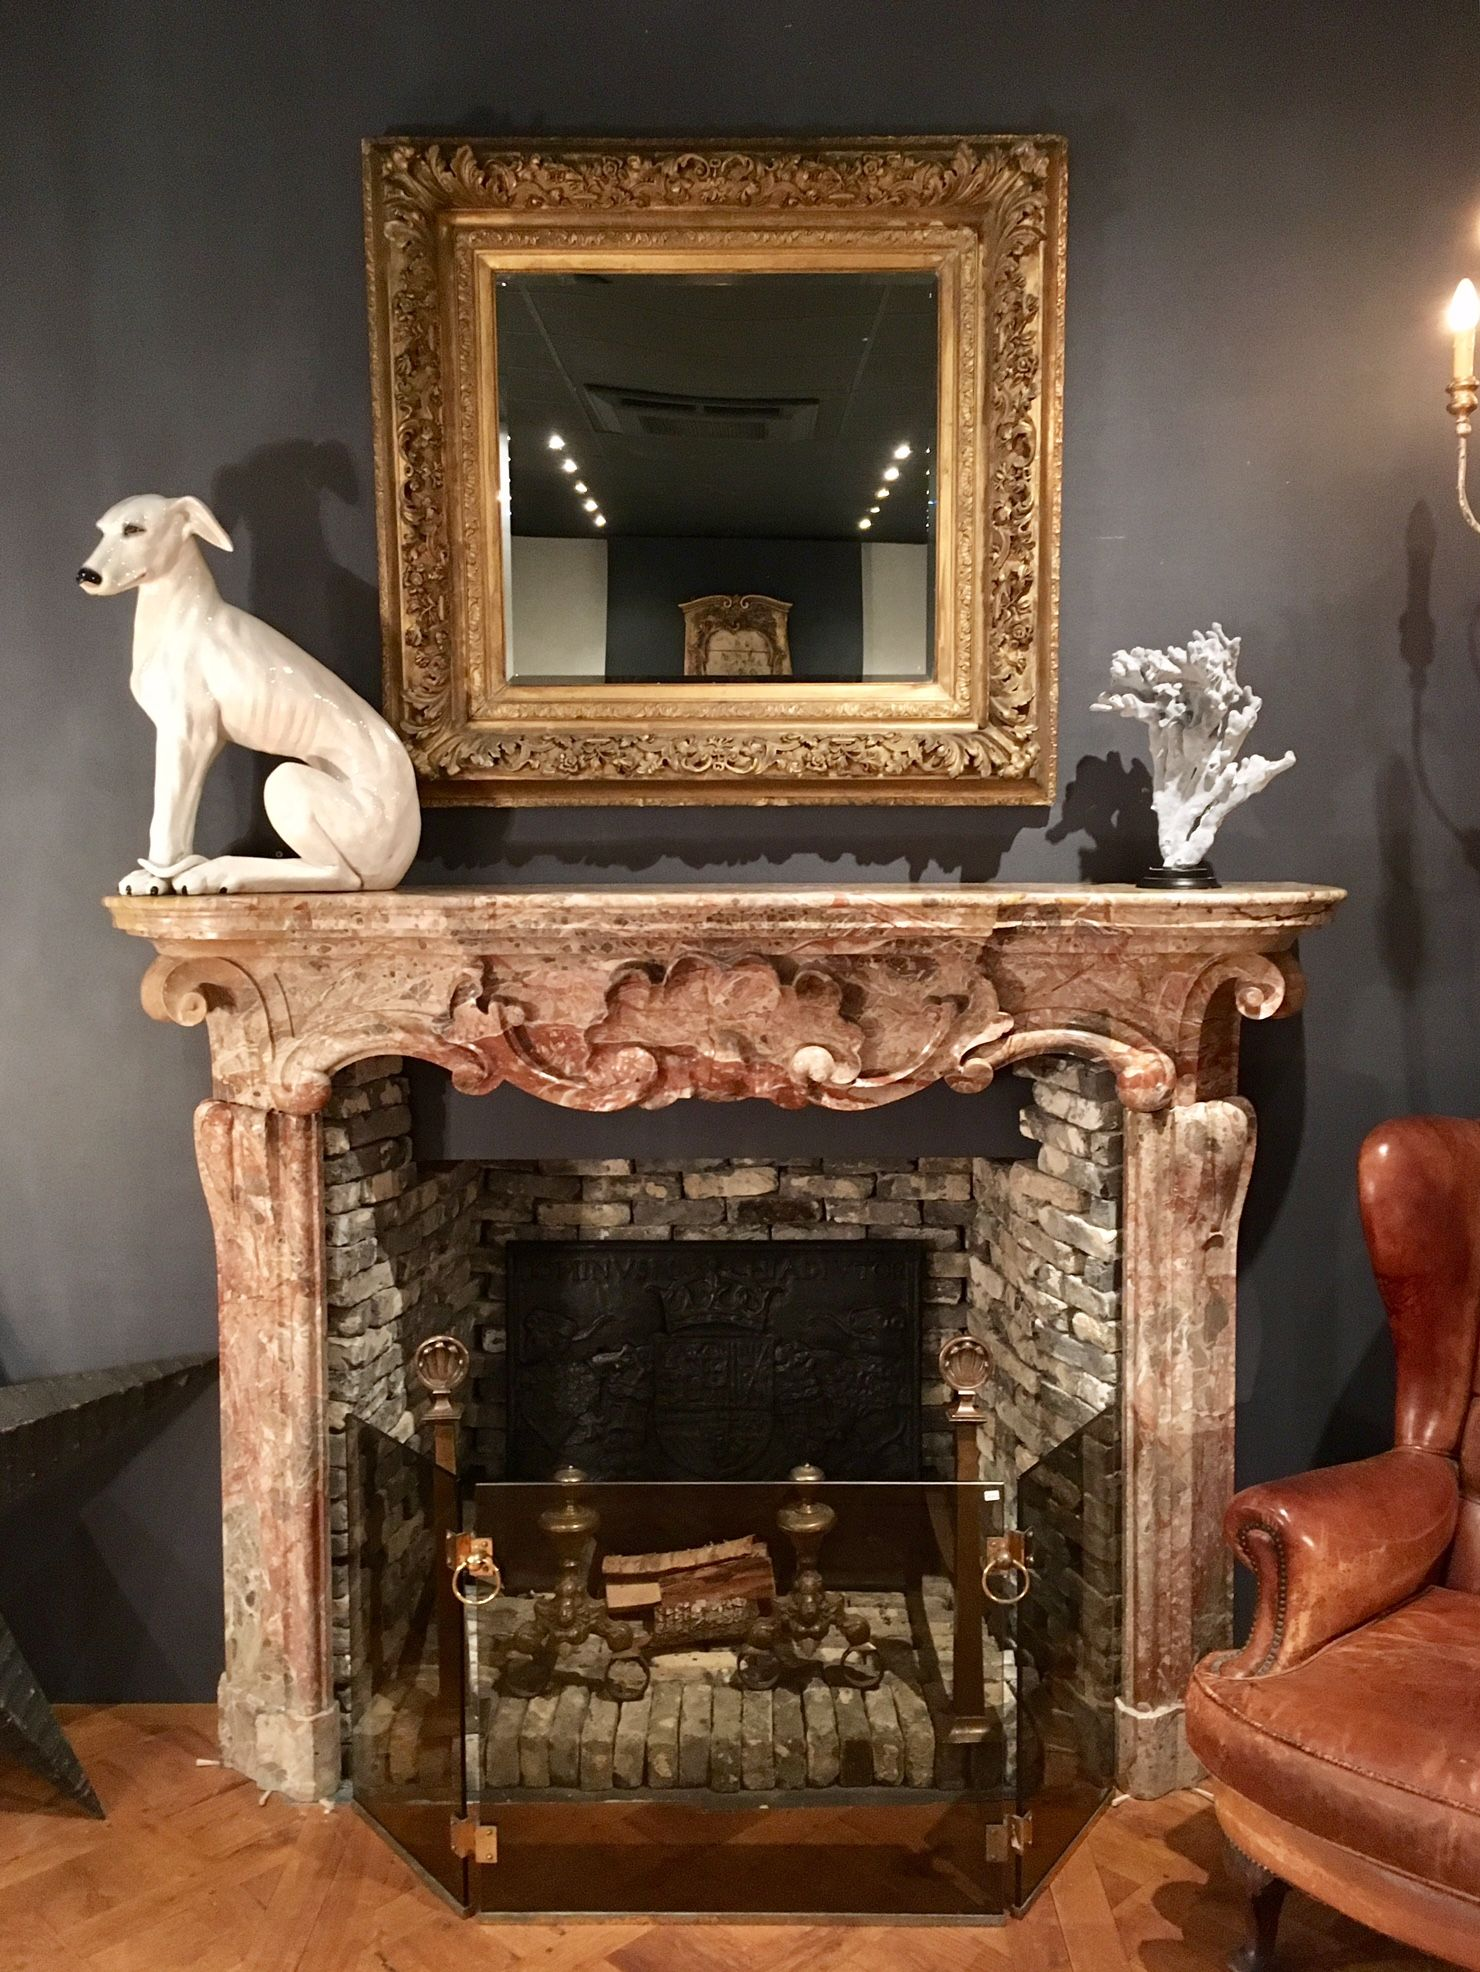 Rouge Royal Marble Fireplace, Antique, Interior, Sculpture Dog, Gold Mirror,